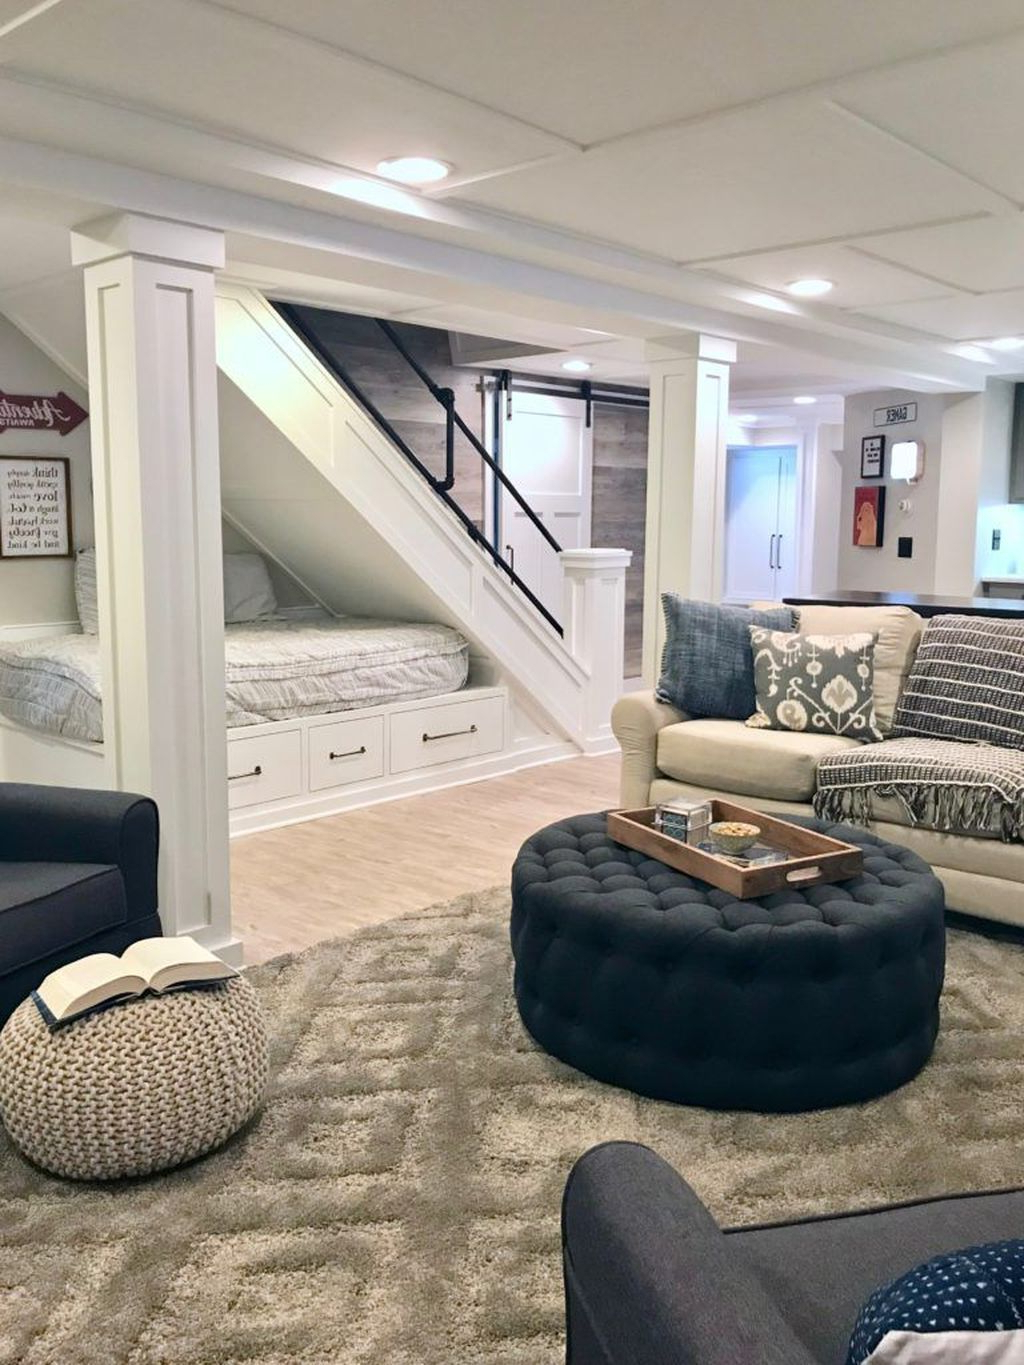 43 Awesome Basement Apartment Ideas You Have To Know